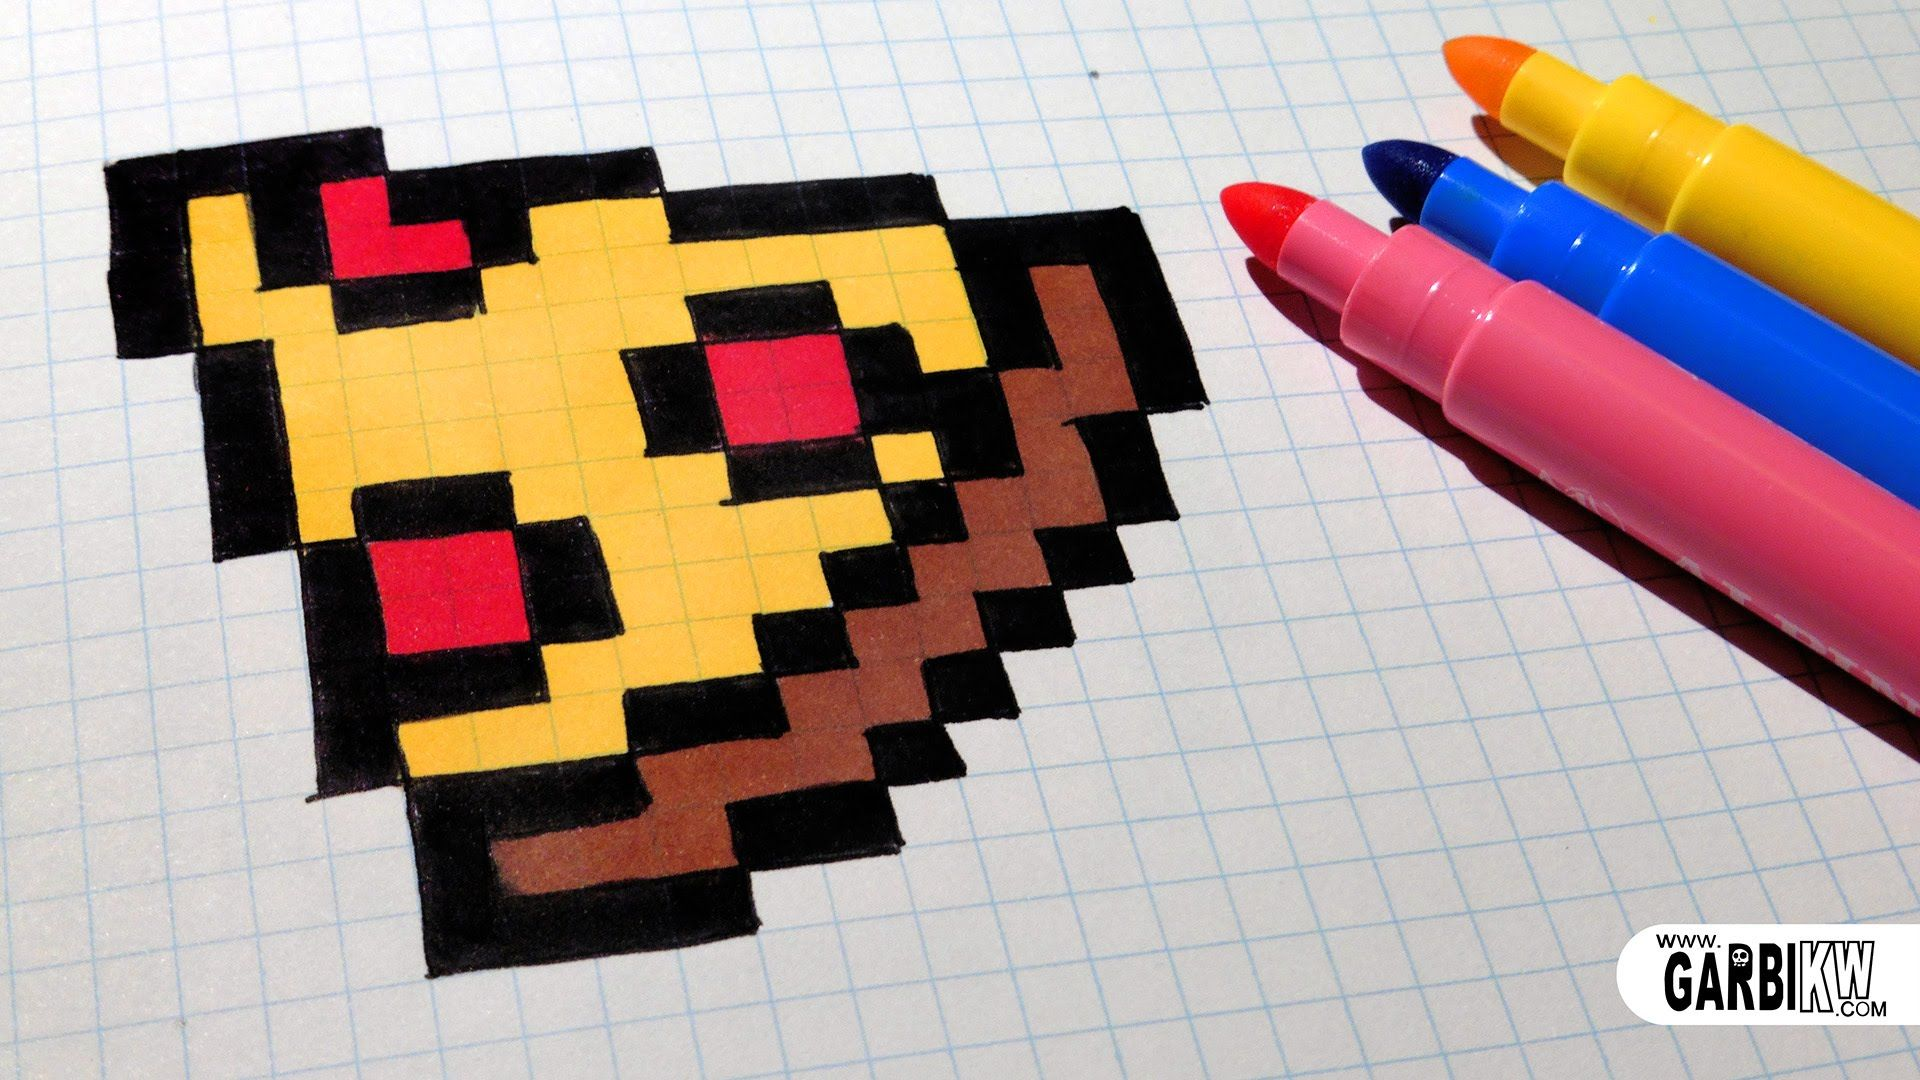 Handmade Pixel Art How To Draw Easy Pizza Pixelart